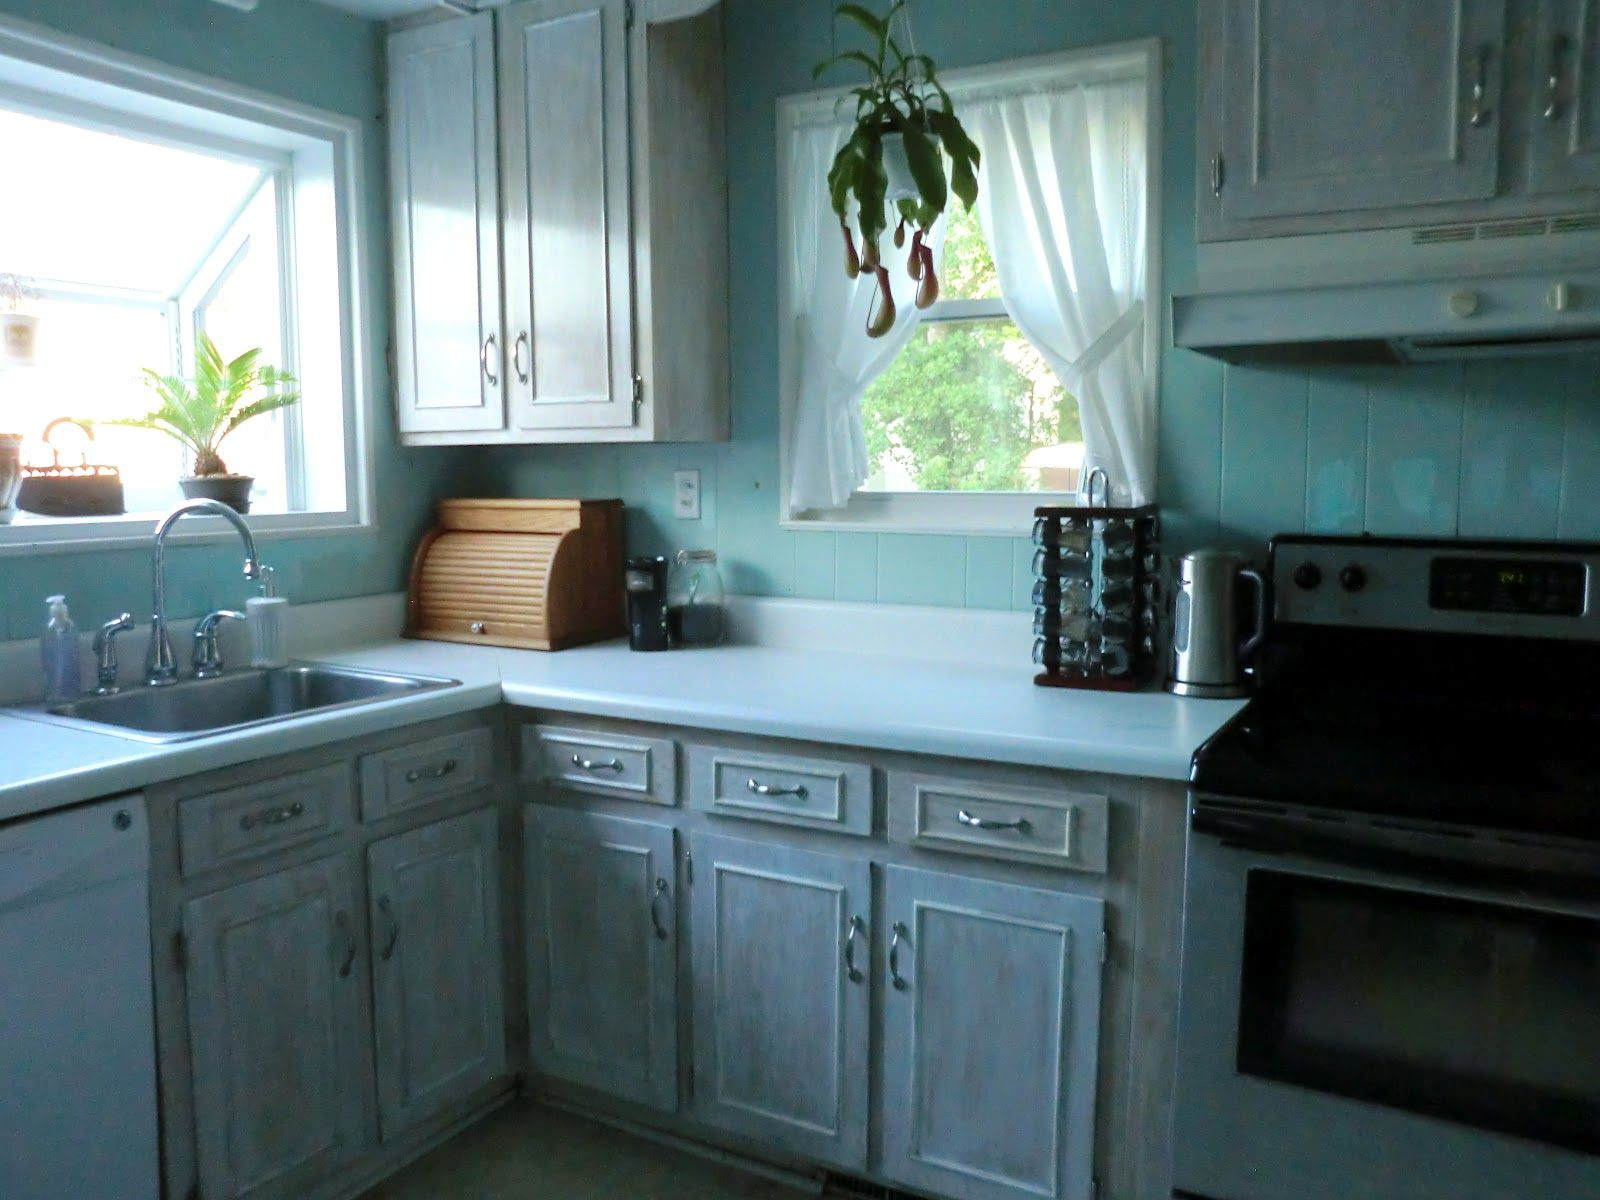 white wash kitchen cabinets | Merry Heart: DIY White Washed Cabinets ...